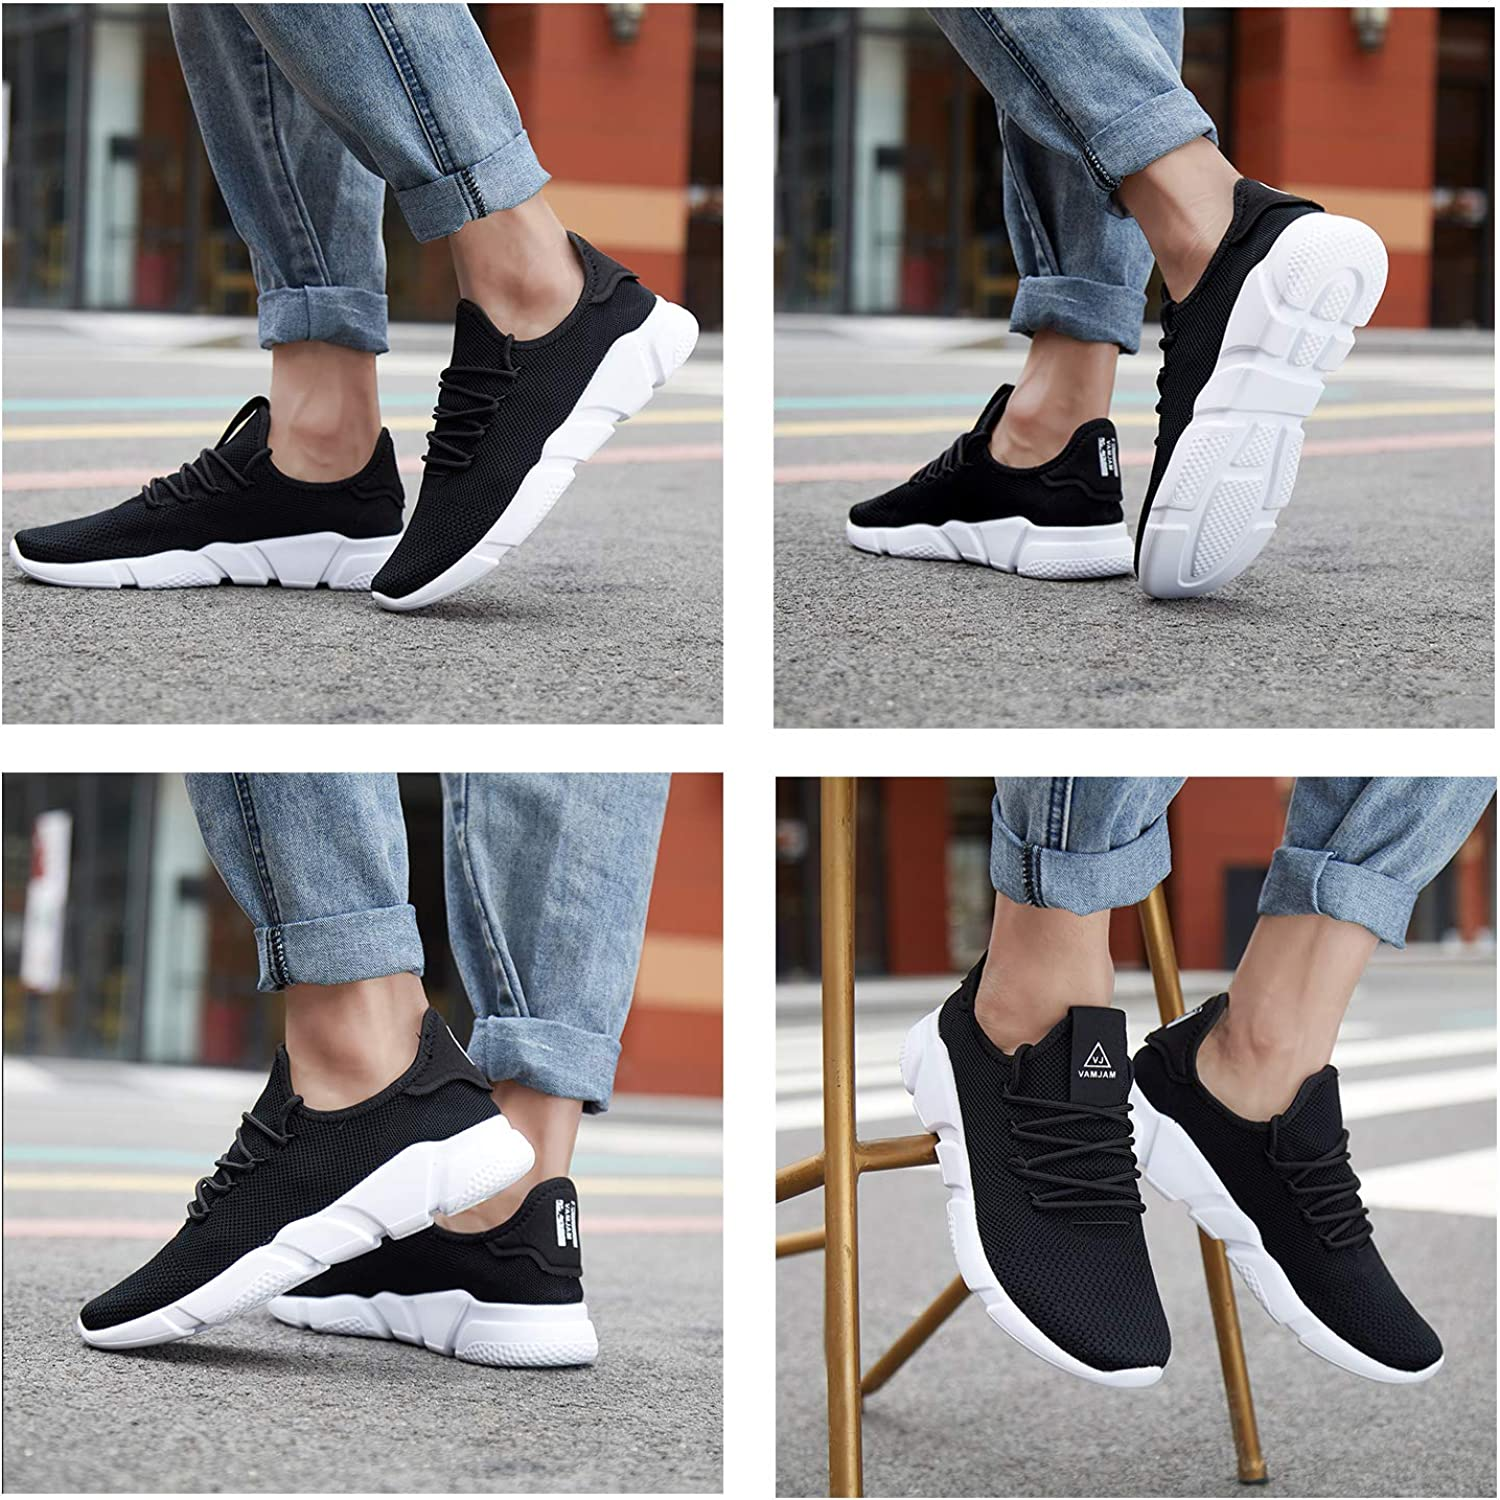 A-PIE Mens Running Athletic Shoes Breathable Lightweight Fashion Sneakers Casual Walking Shoes